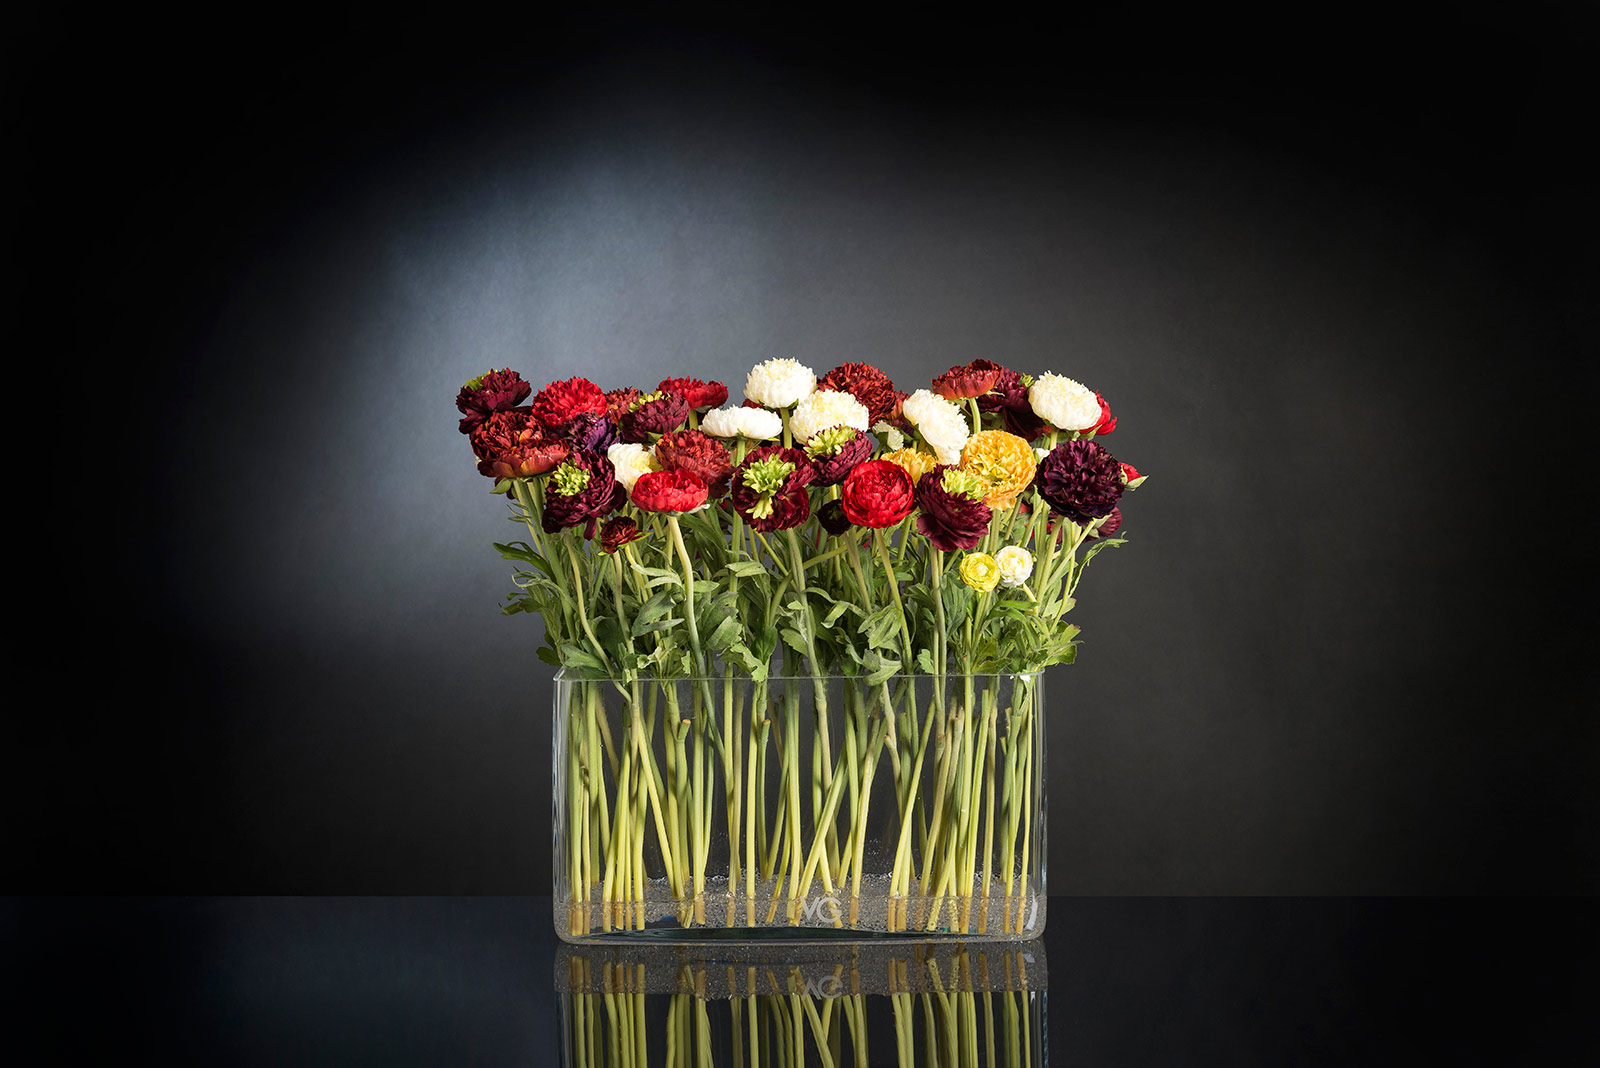 Flower arrangement with artificial flowers for interior decorating, wedding & events, home decor by VG New Trend - Masha Shapiro Agency.jpg